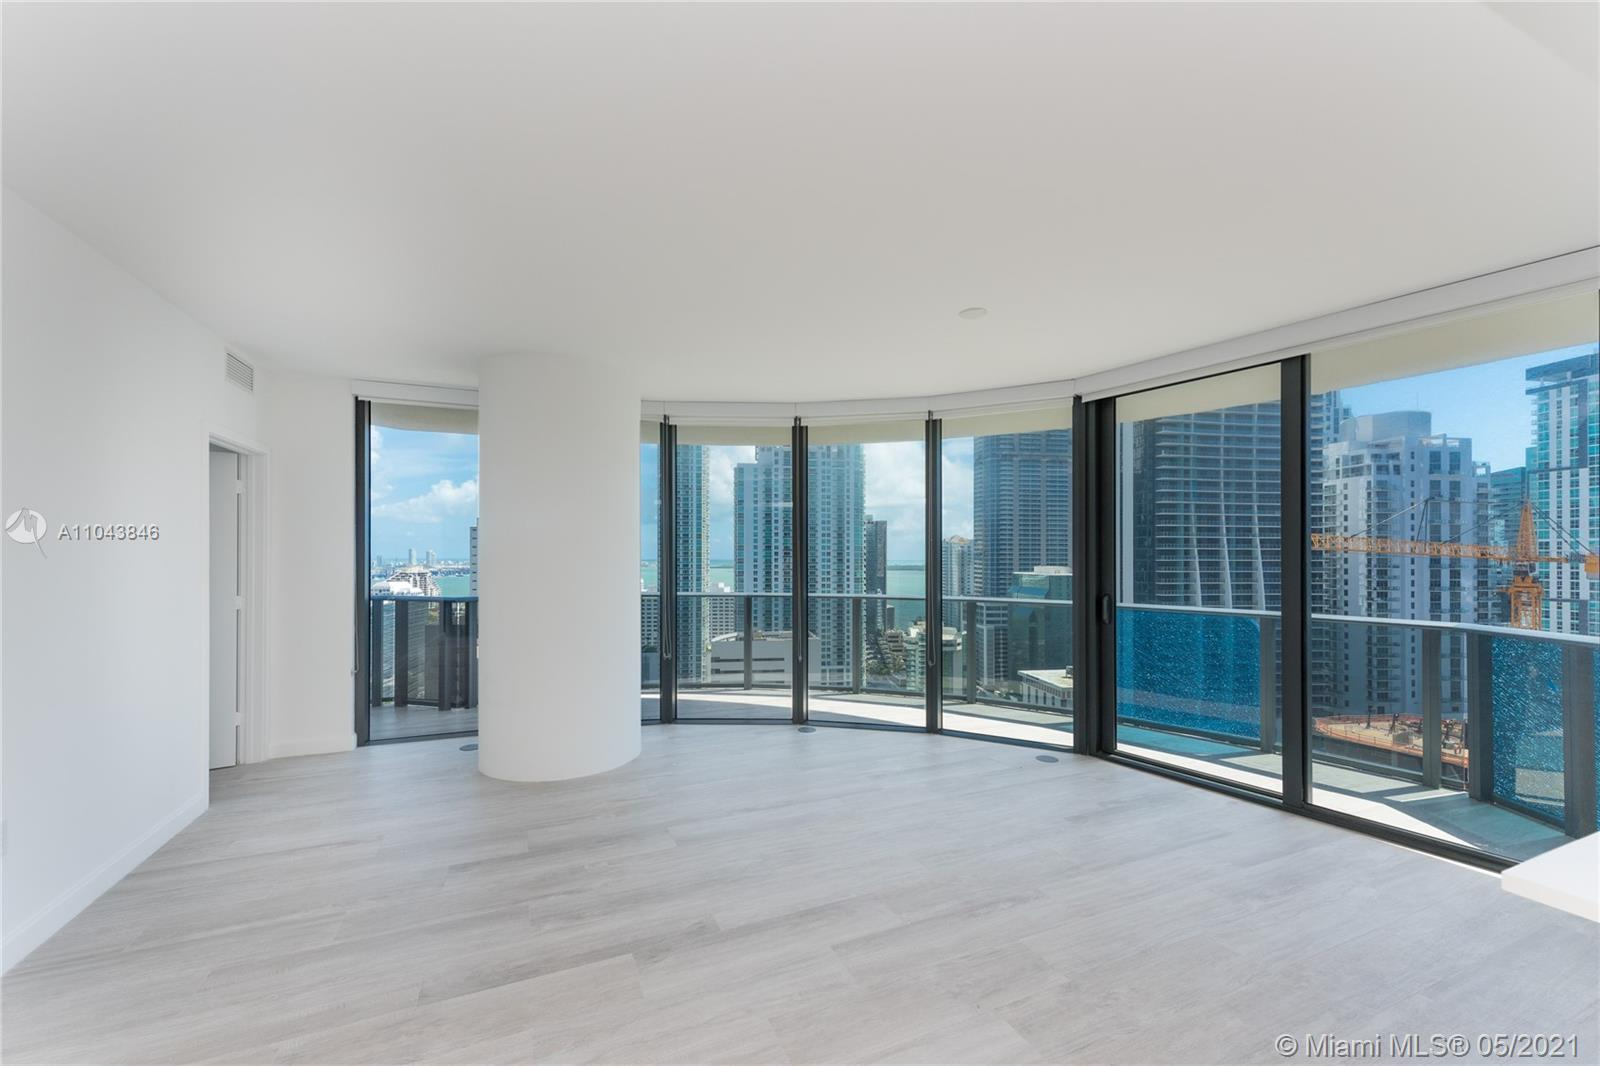 Spacious and beautiful unit in Brickell Heights East Tower with great layout. 2 Beds + DEN, 2 full baths. Top of the line appliances and finishes. Great views overlooking the Bay and Brickell Skyline from it's spacious balcony. All porcelain floors throughout. Blinds/Blackouts and 1 assigned parking space. Amenities include: Concierge 24/7, 2 pools (1 rooftop pool), jacuzzi, gym, steam room, sauna, business center, media room, children play-room, theater. Just steps from Mary Brickell Village, great restaurants and Brickell City Centre.